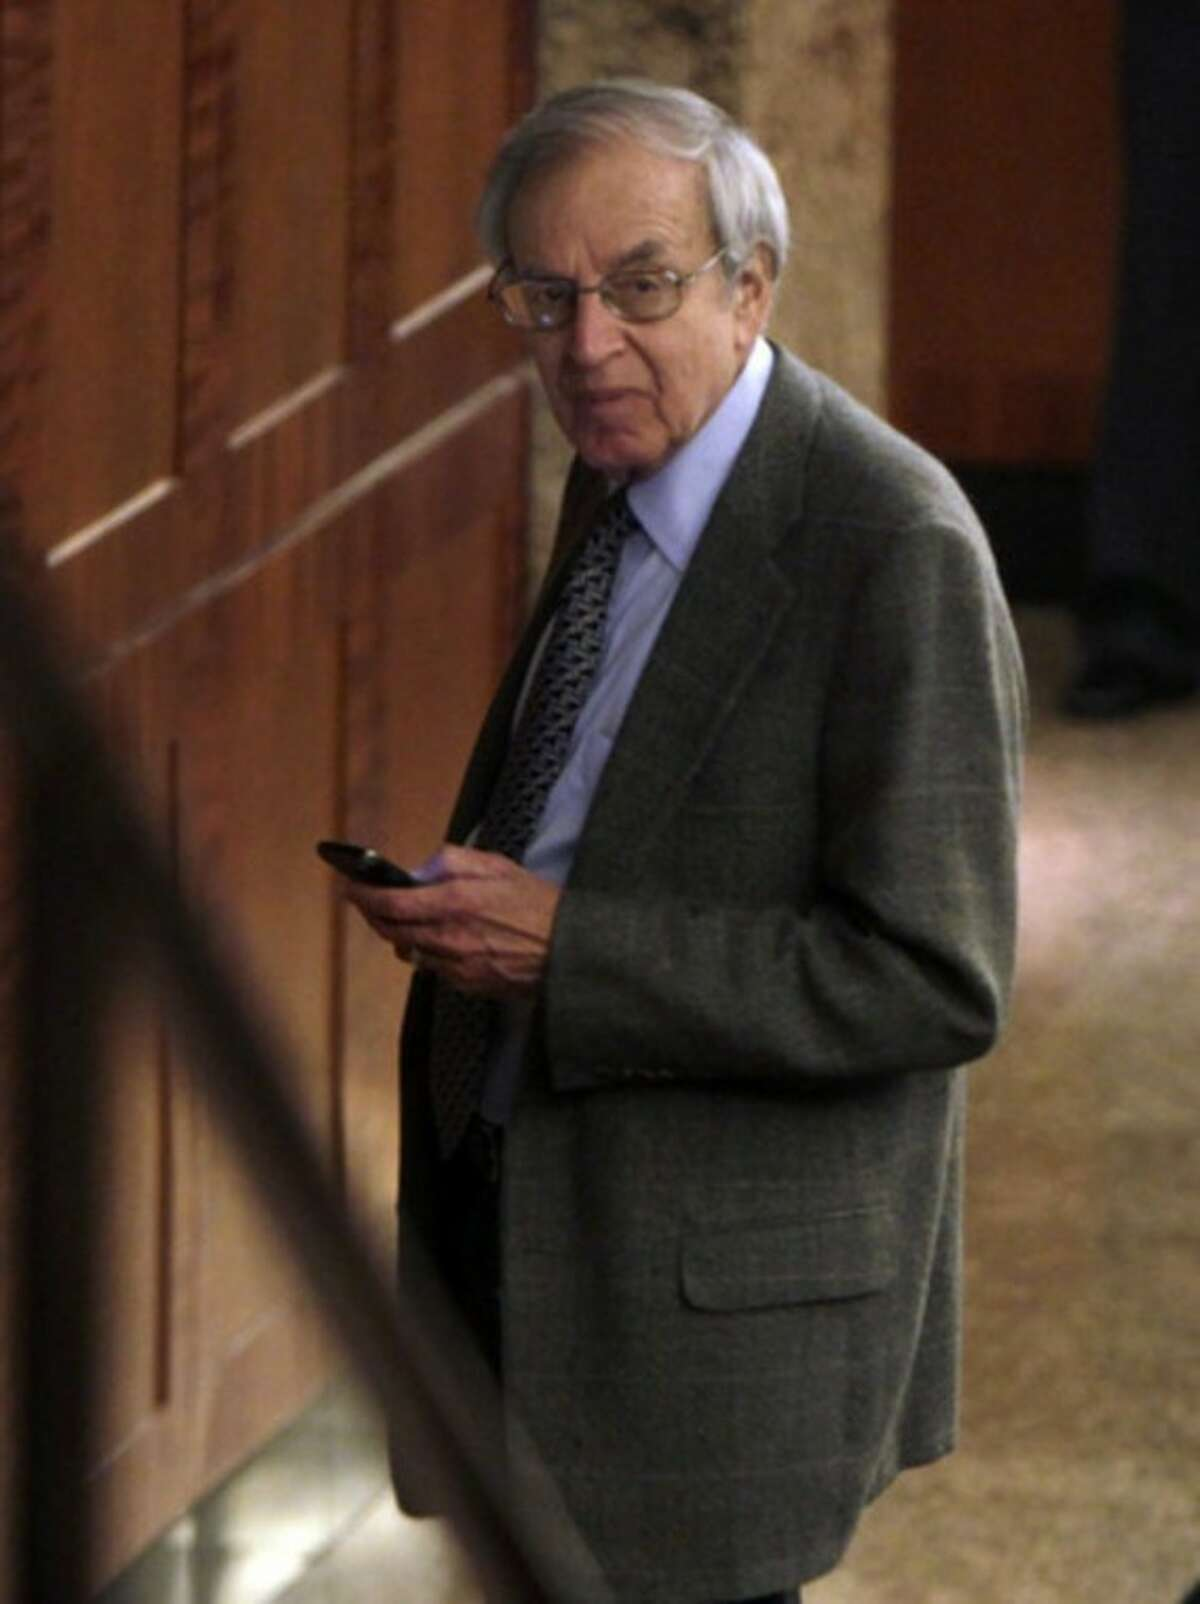 Federal mediator George Cohen uses a cell phone at the NBA labor negotiations, in New York, Wednesday, Oct. 19, 2011. NBA owners and players are meeting for a second straight day, shortly after finishing a 16-hour marathon. (AP Photo/Seth Wenig)